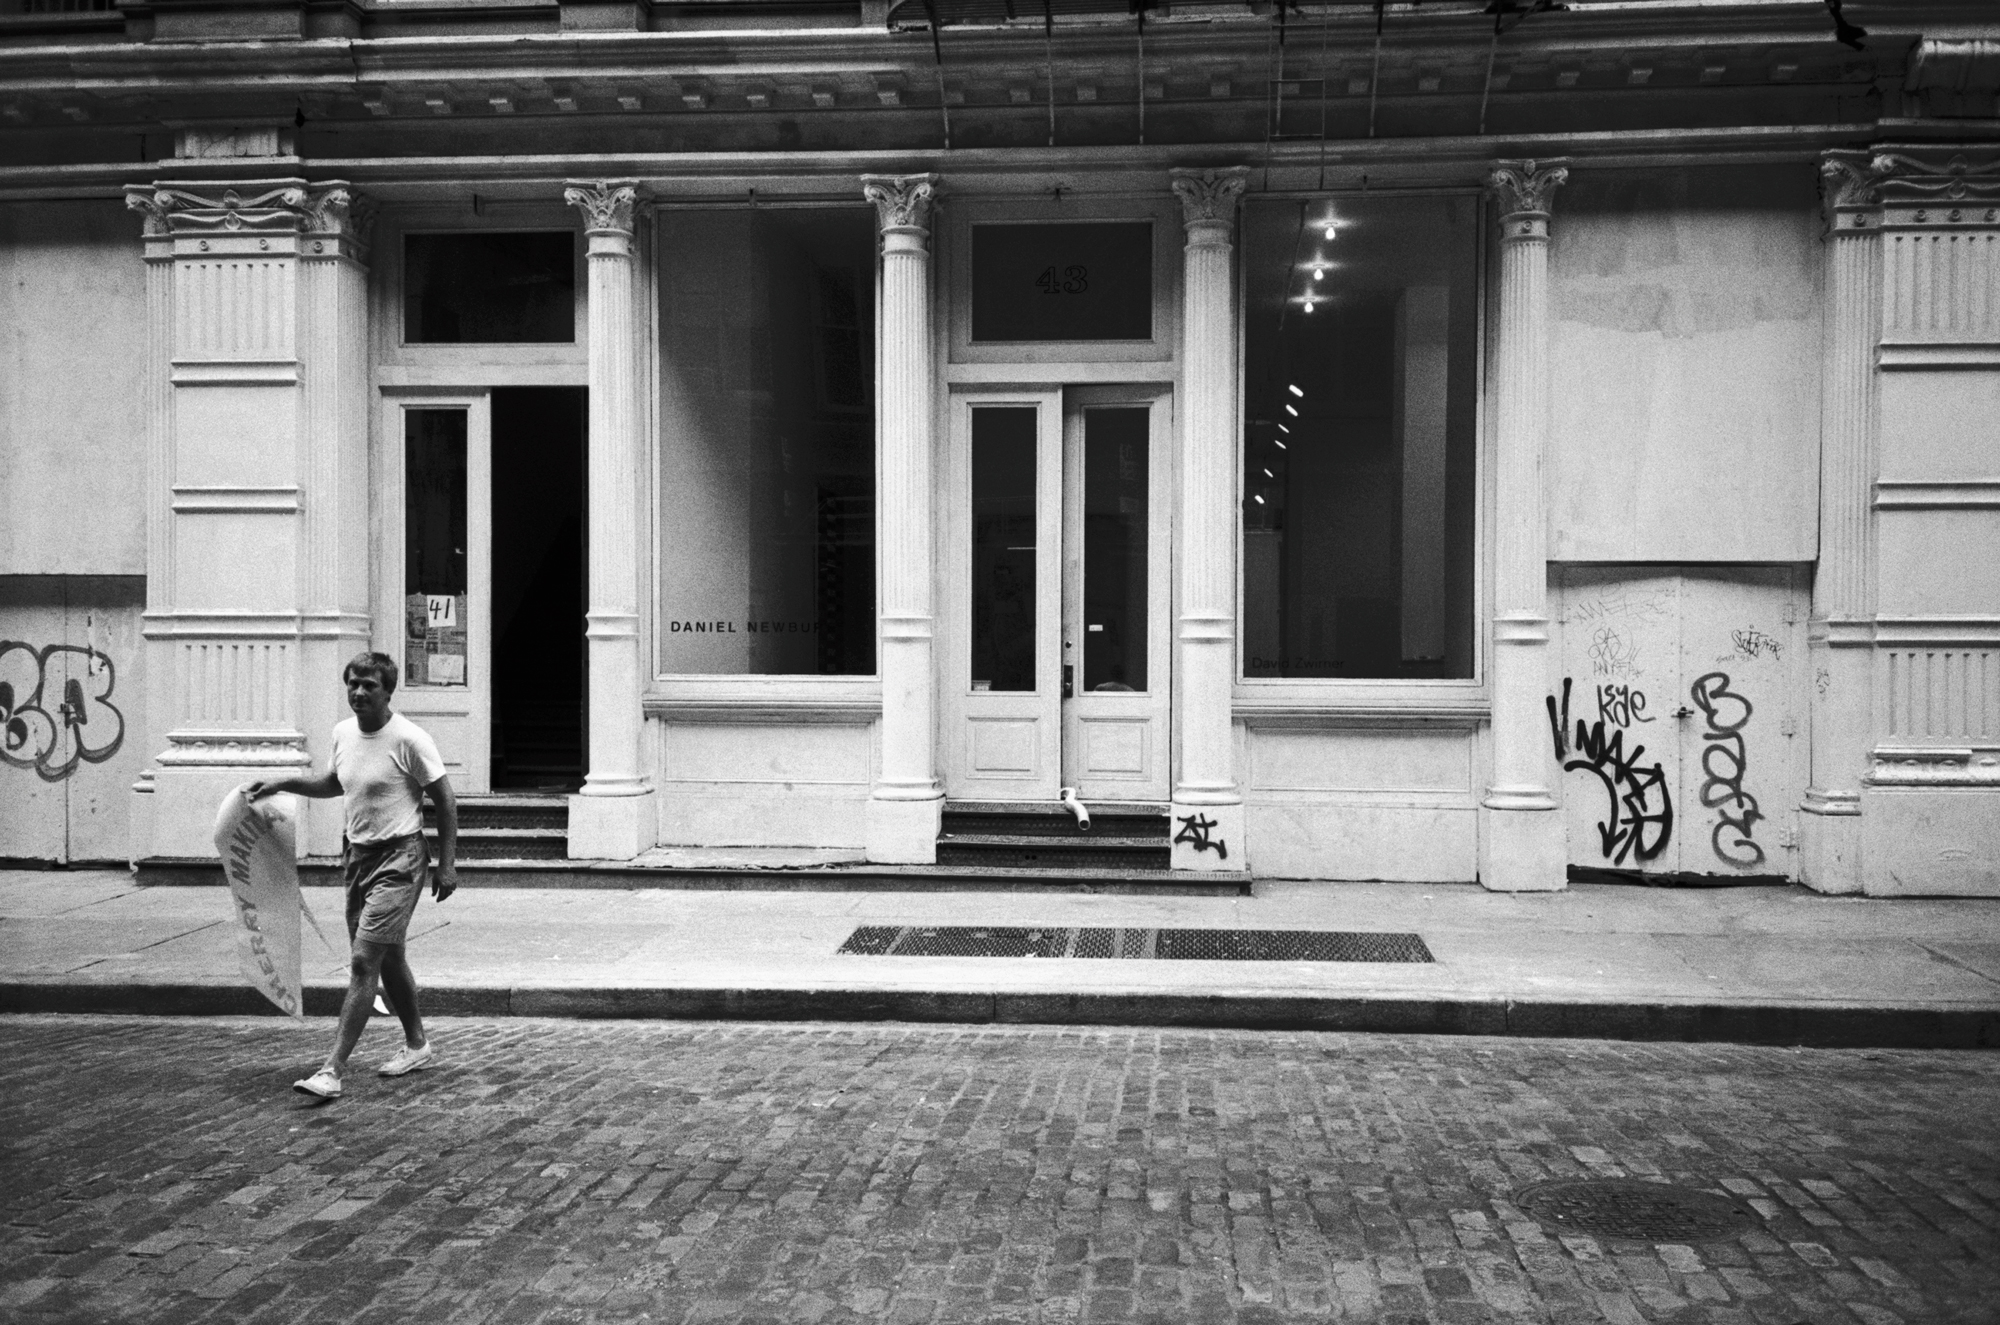 A photograph of David Zwirner outside of 43 Greene Street in New York, dated 1993.